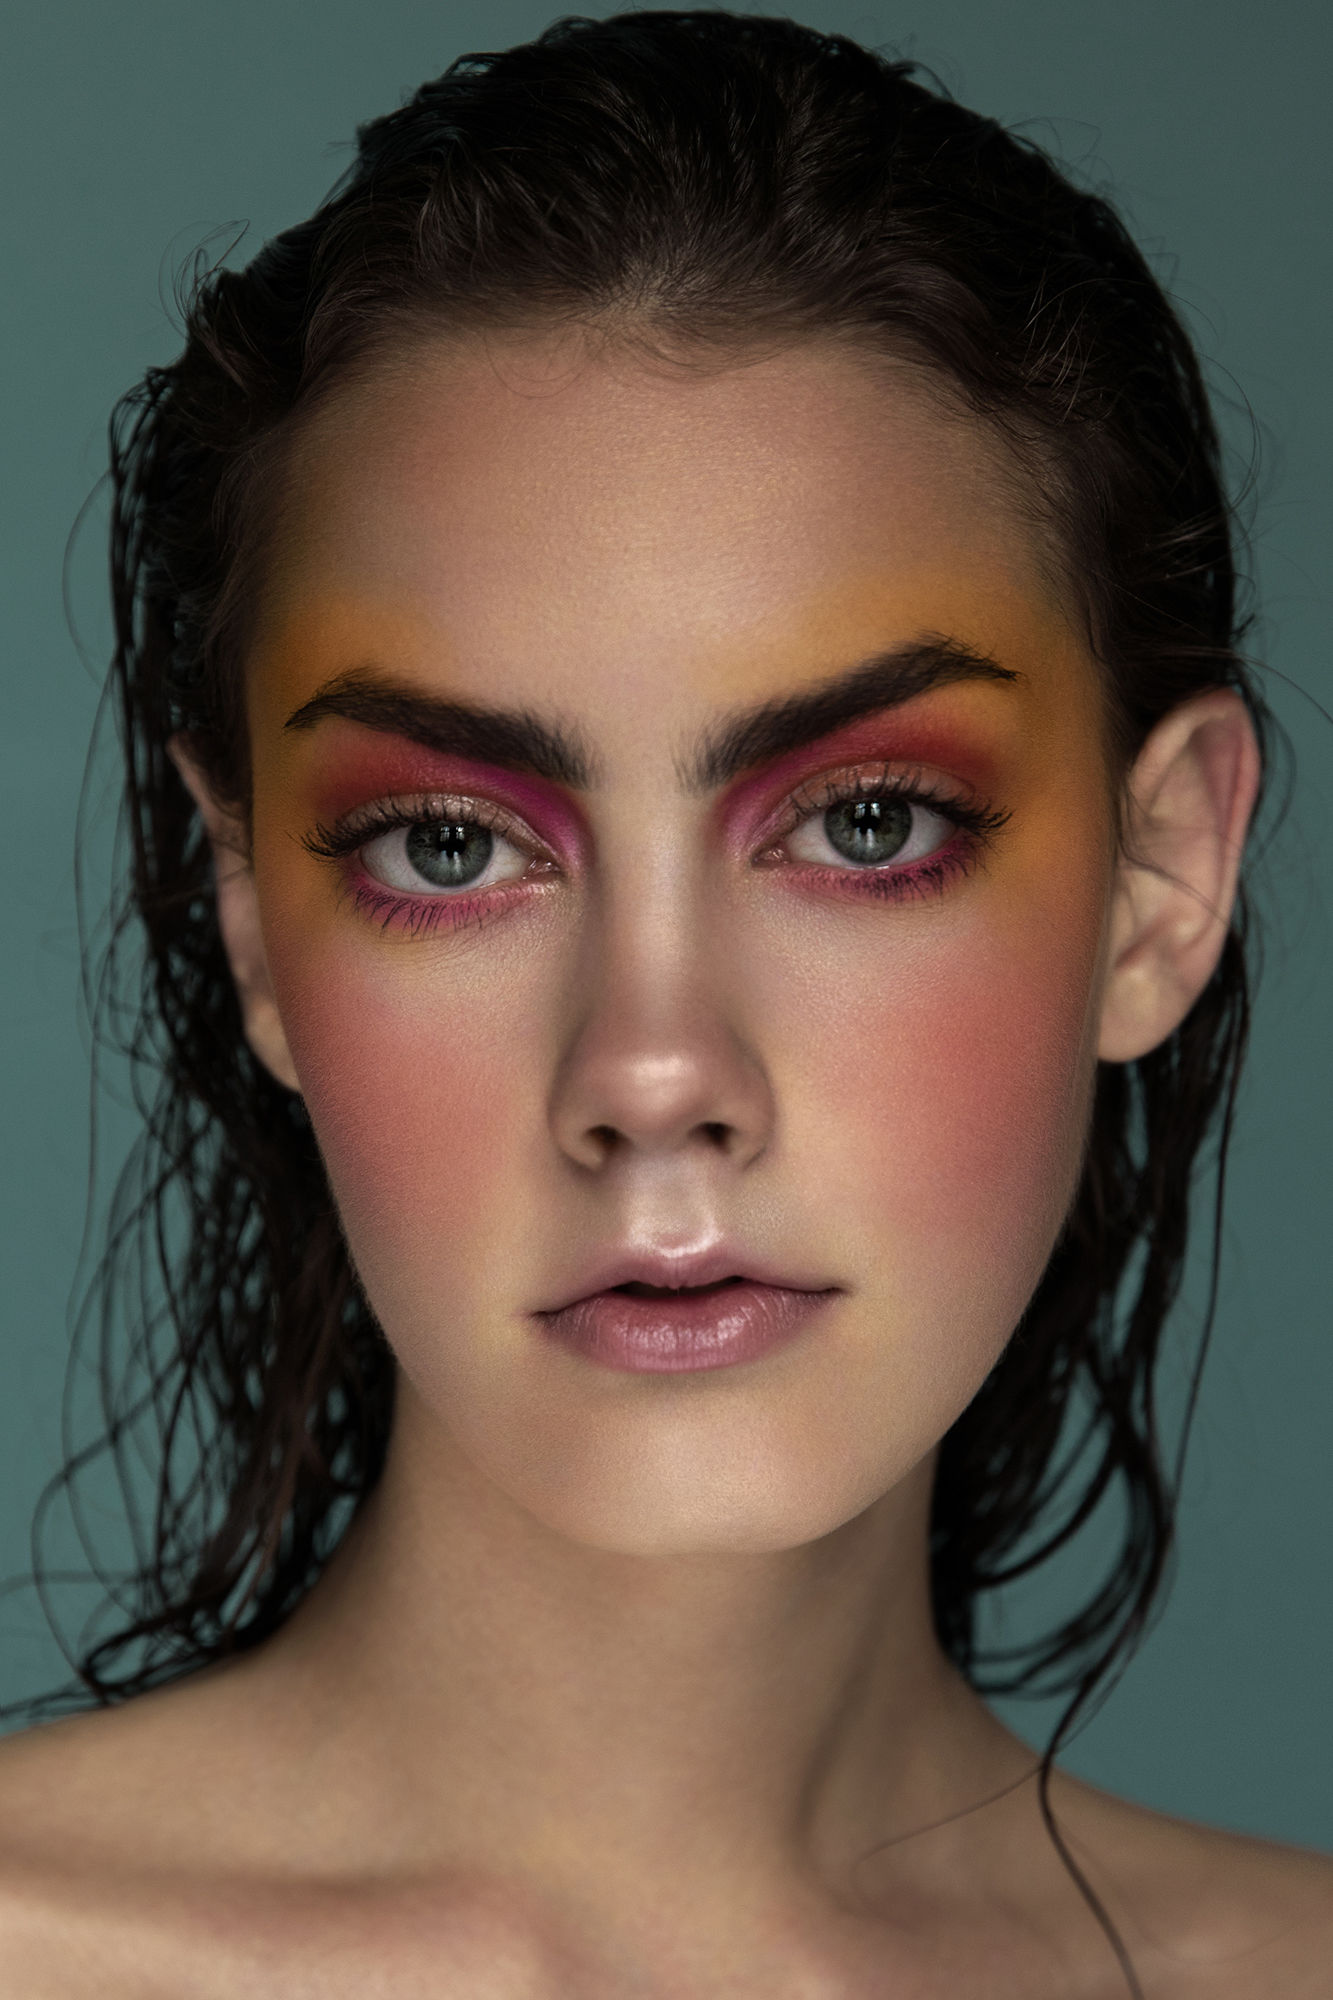 CHRISTA KLUBERT PHOTOGRAPHERS: SCHALL&SCHNABEL WITH A GREAT BEAUTY SERIES